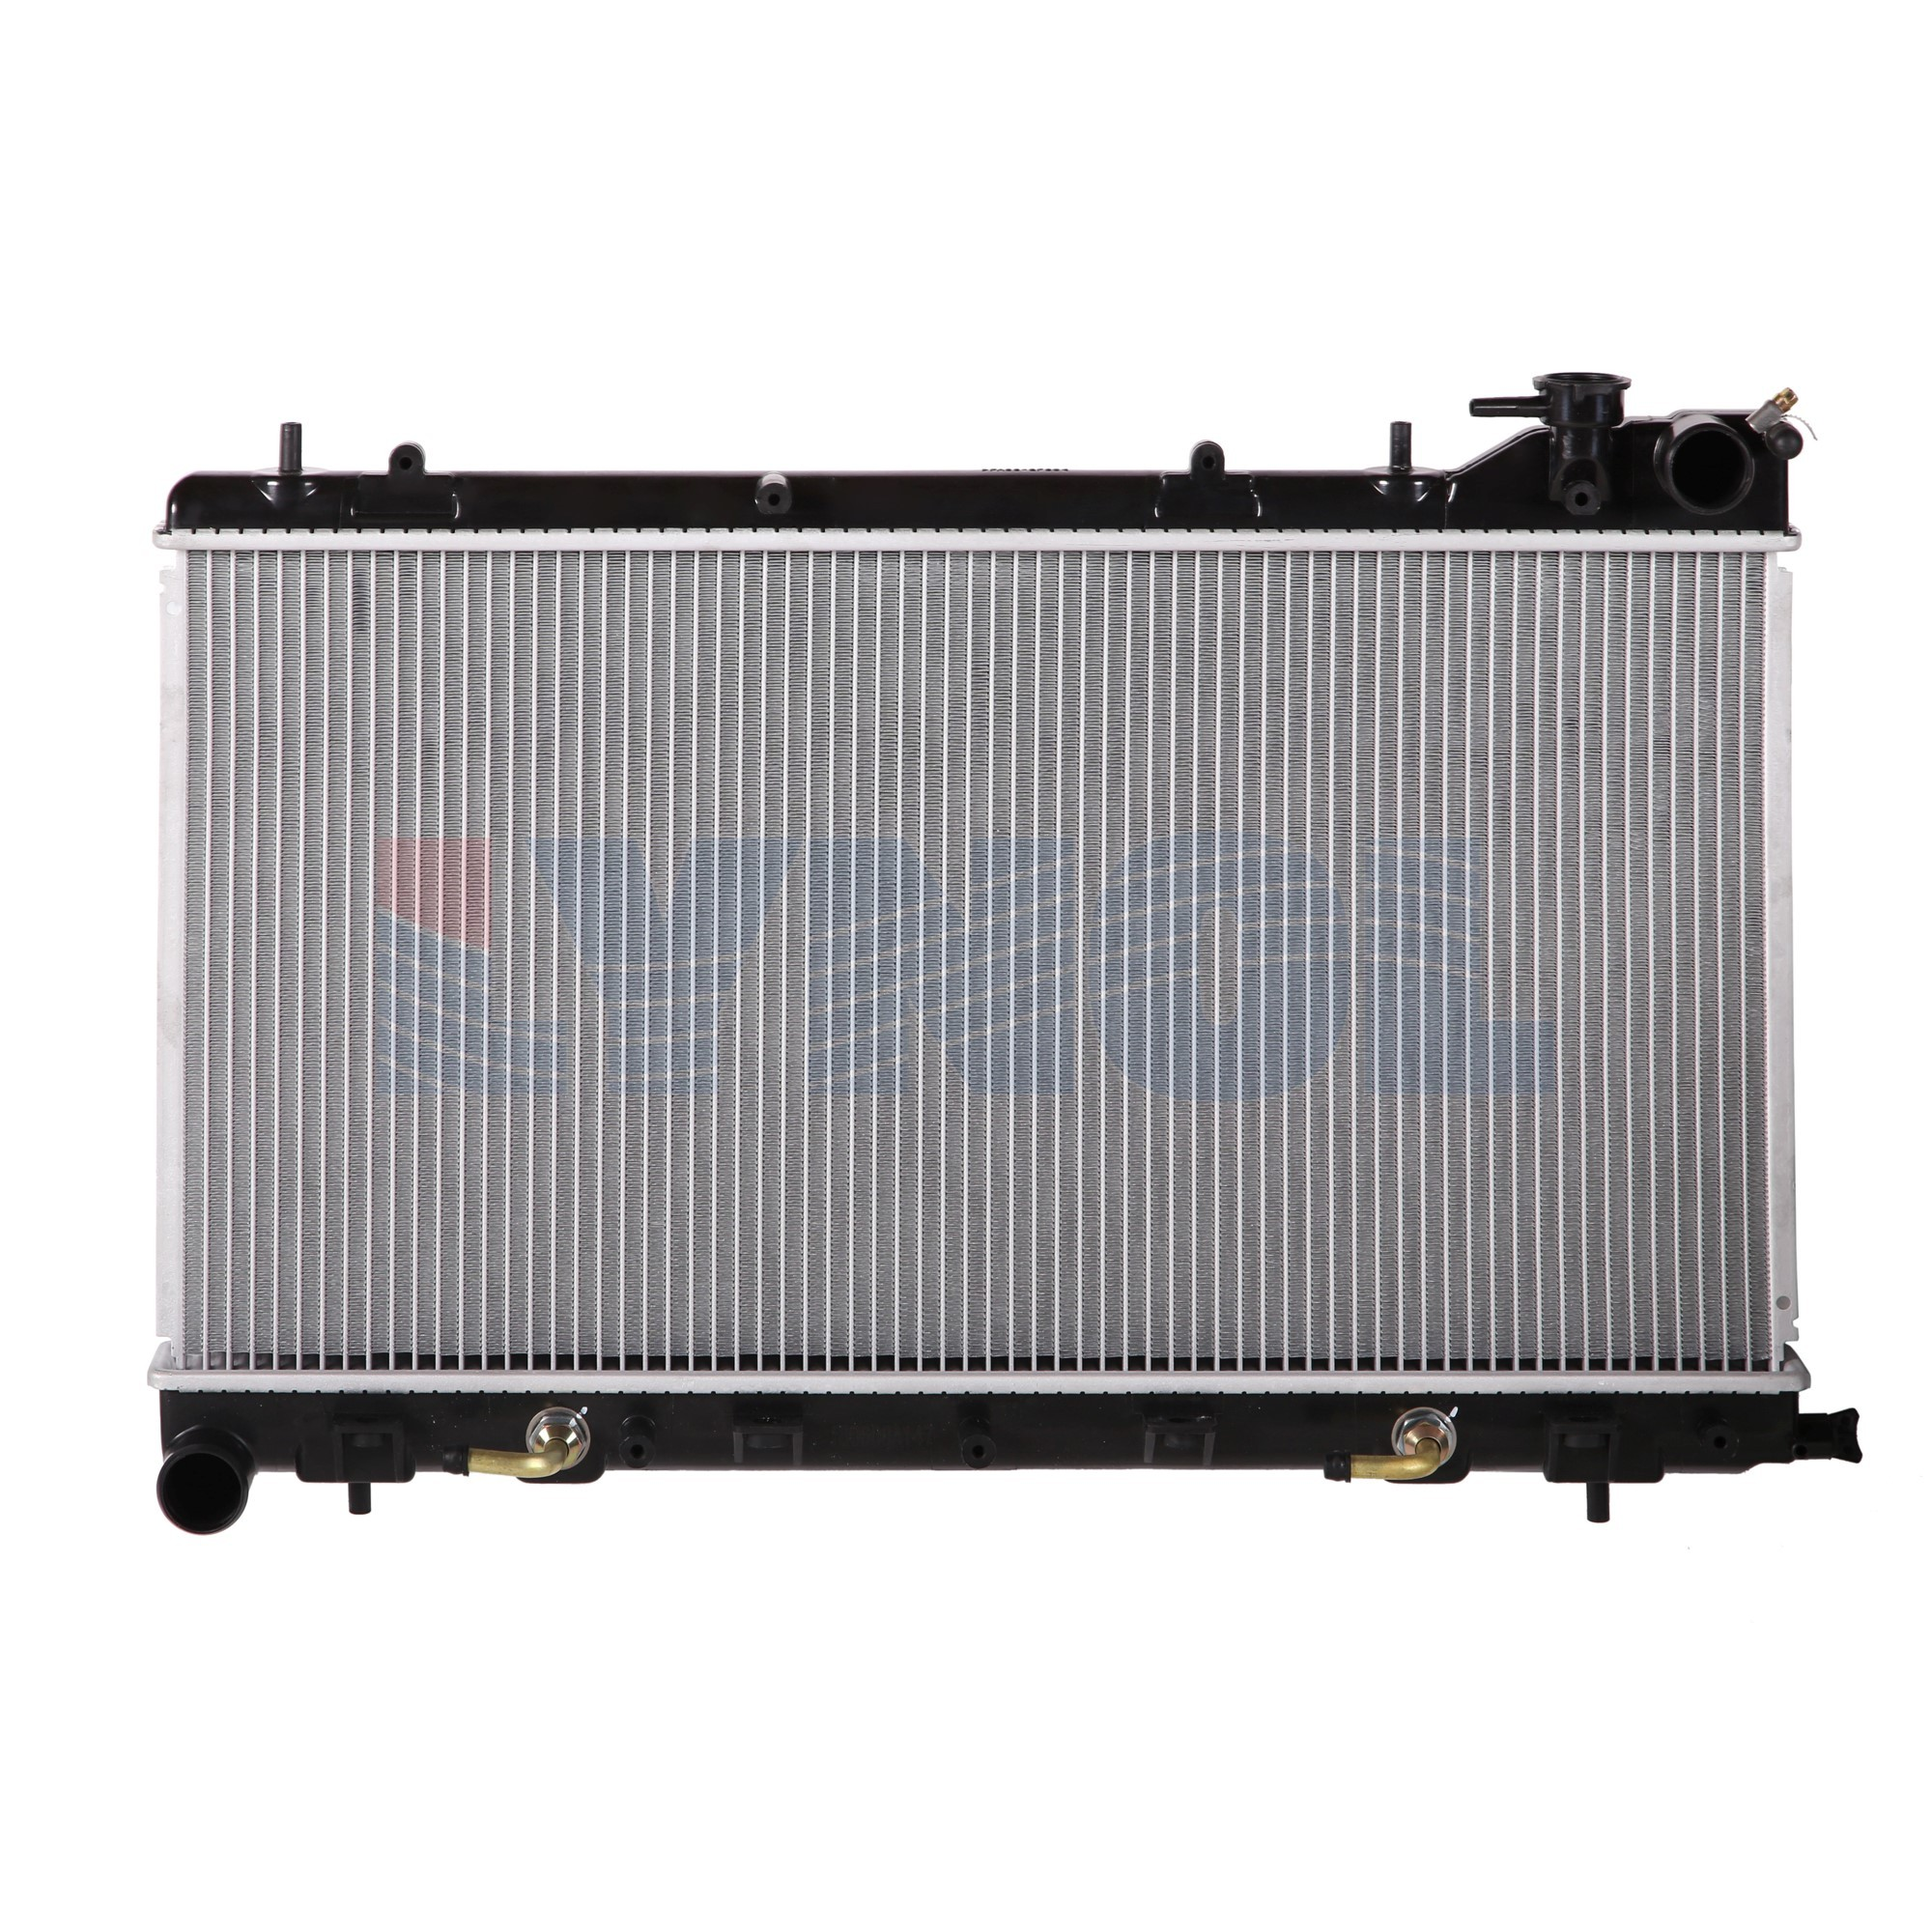 13026 - RADIATOR  - 06-08 SUB FORESTER A/T 2.5L W/TURBO RADIATOR